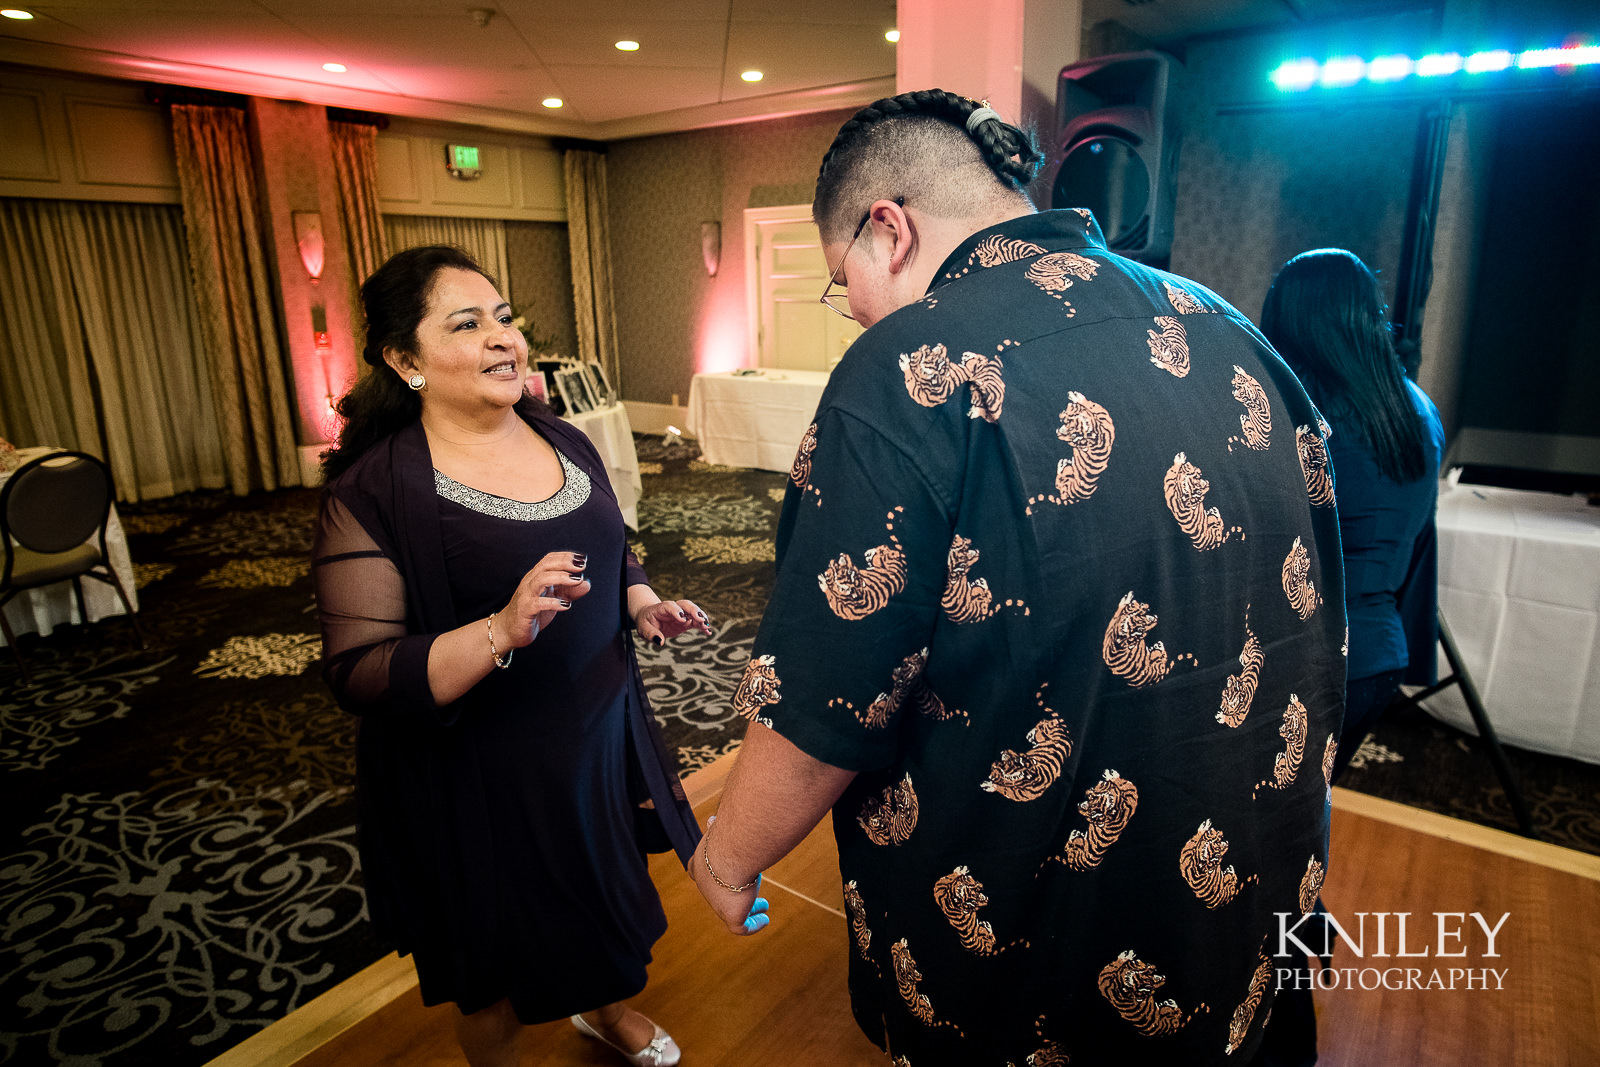 118 - Woodcliff Hotel - Rochester NY wedding photo - Kniley Photography.jpg